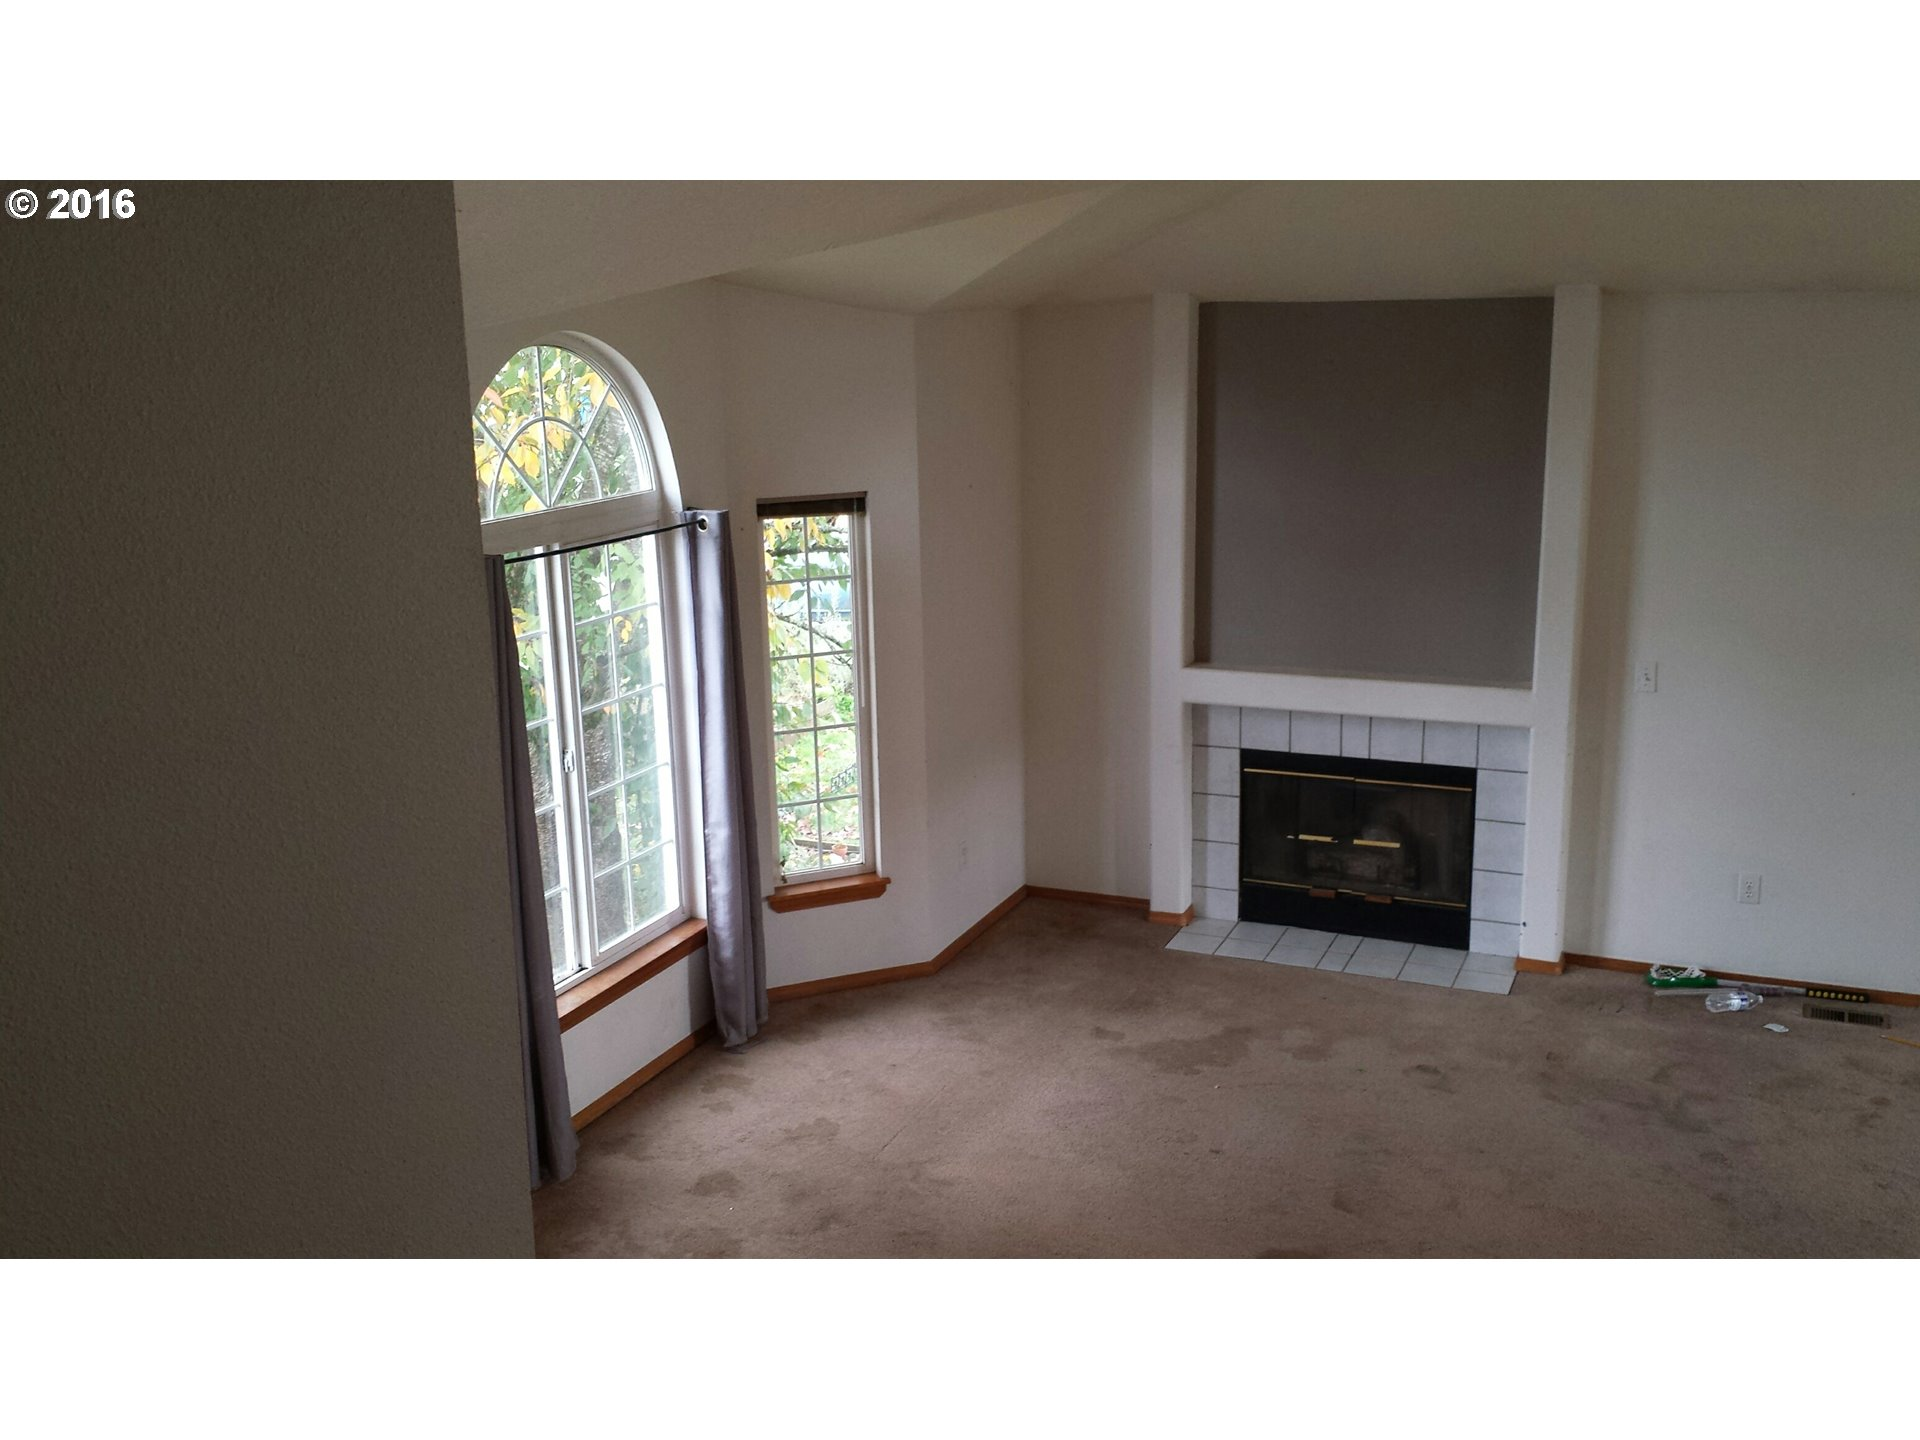 1612 sq. ft 3 bedrooms 2 bathrooms  House ,Vancouver, WA